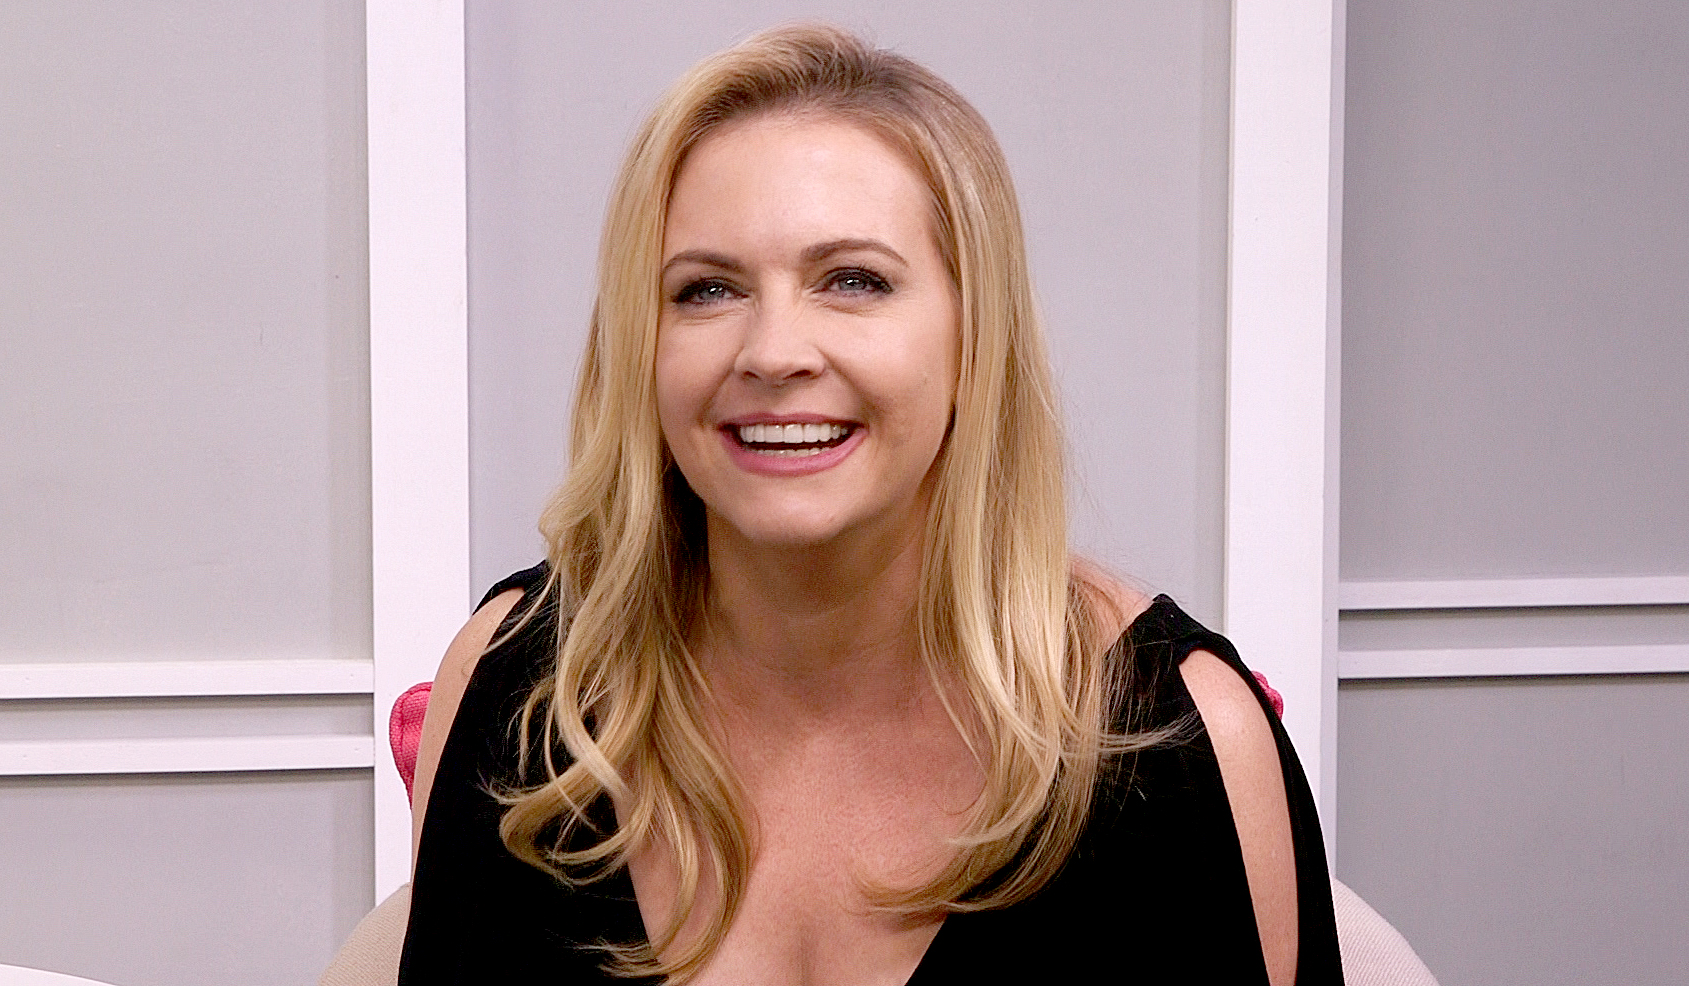 Melissa Joan Hart Just Shared A Photo of Her Bikini Body, and She Looks Fantastic pictures